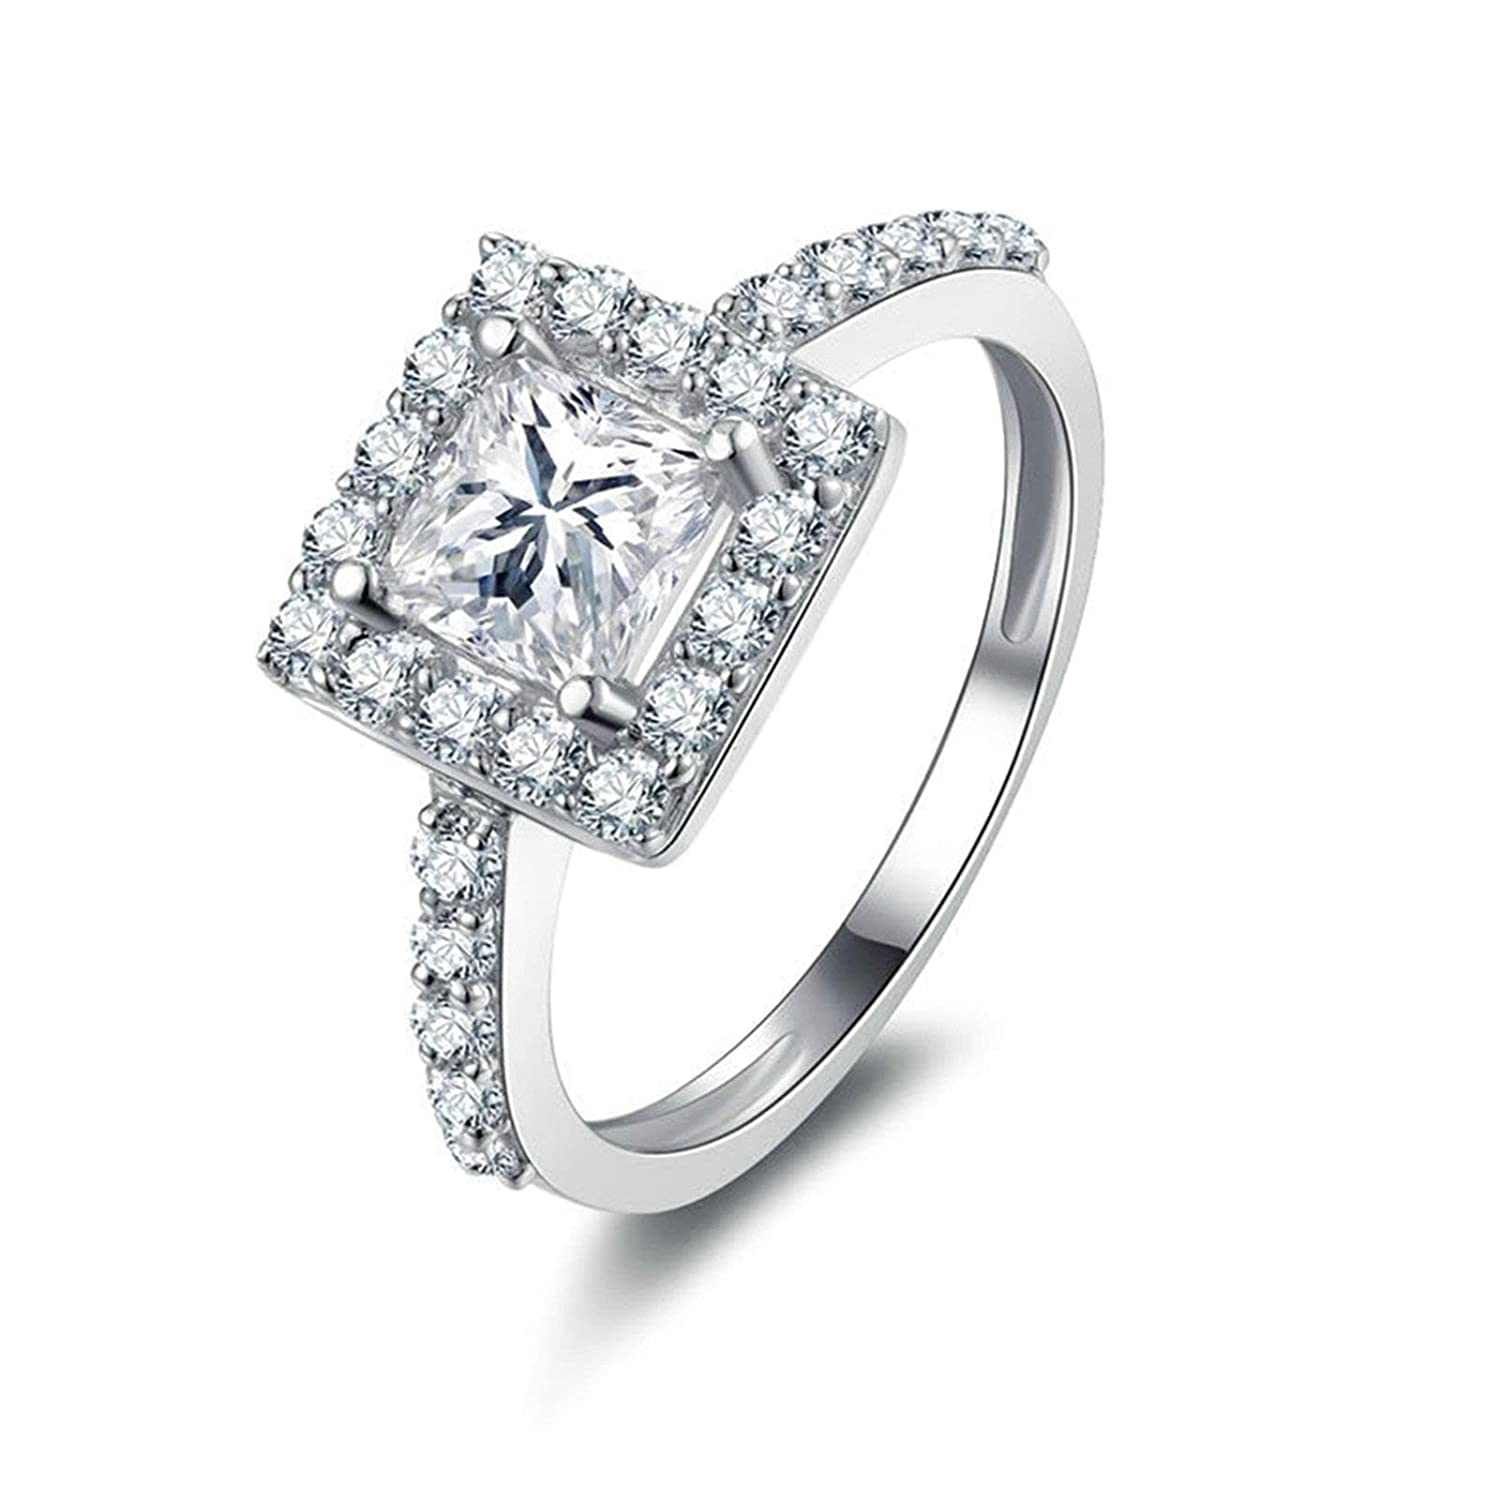 2df970ceed5bc Amazon.com: Aooaz Jewelry Wedding Ring Silver Material Girl's Square ...